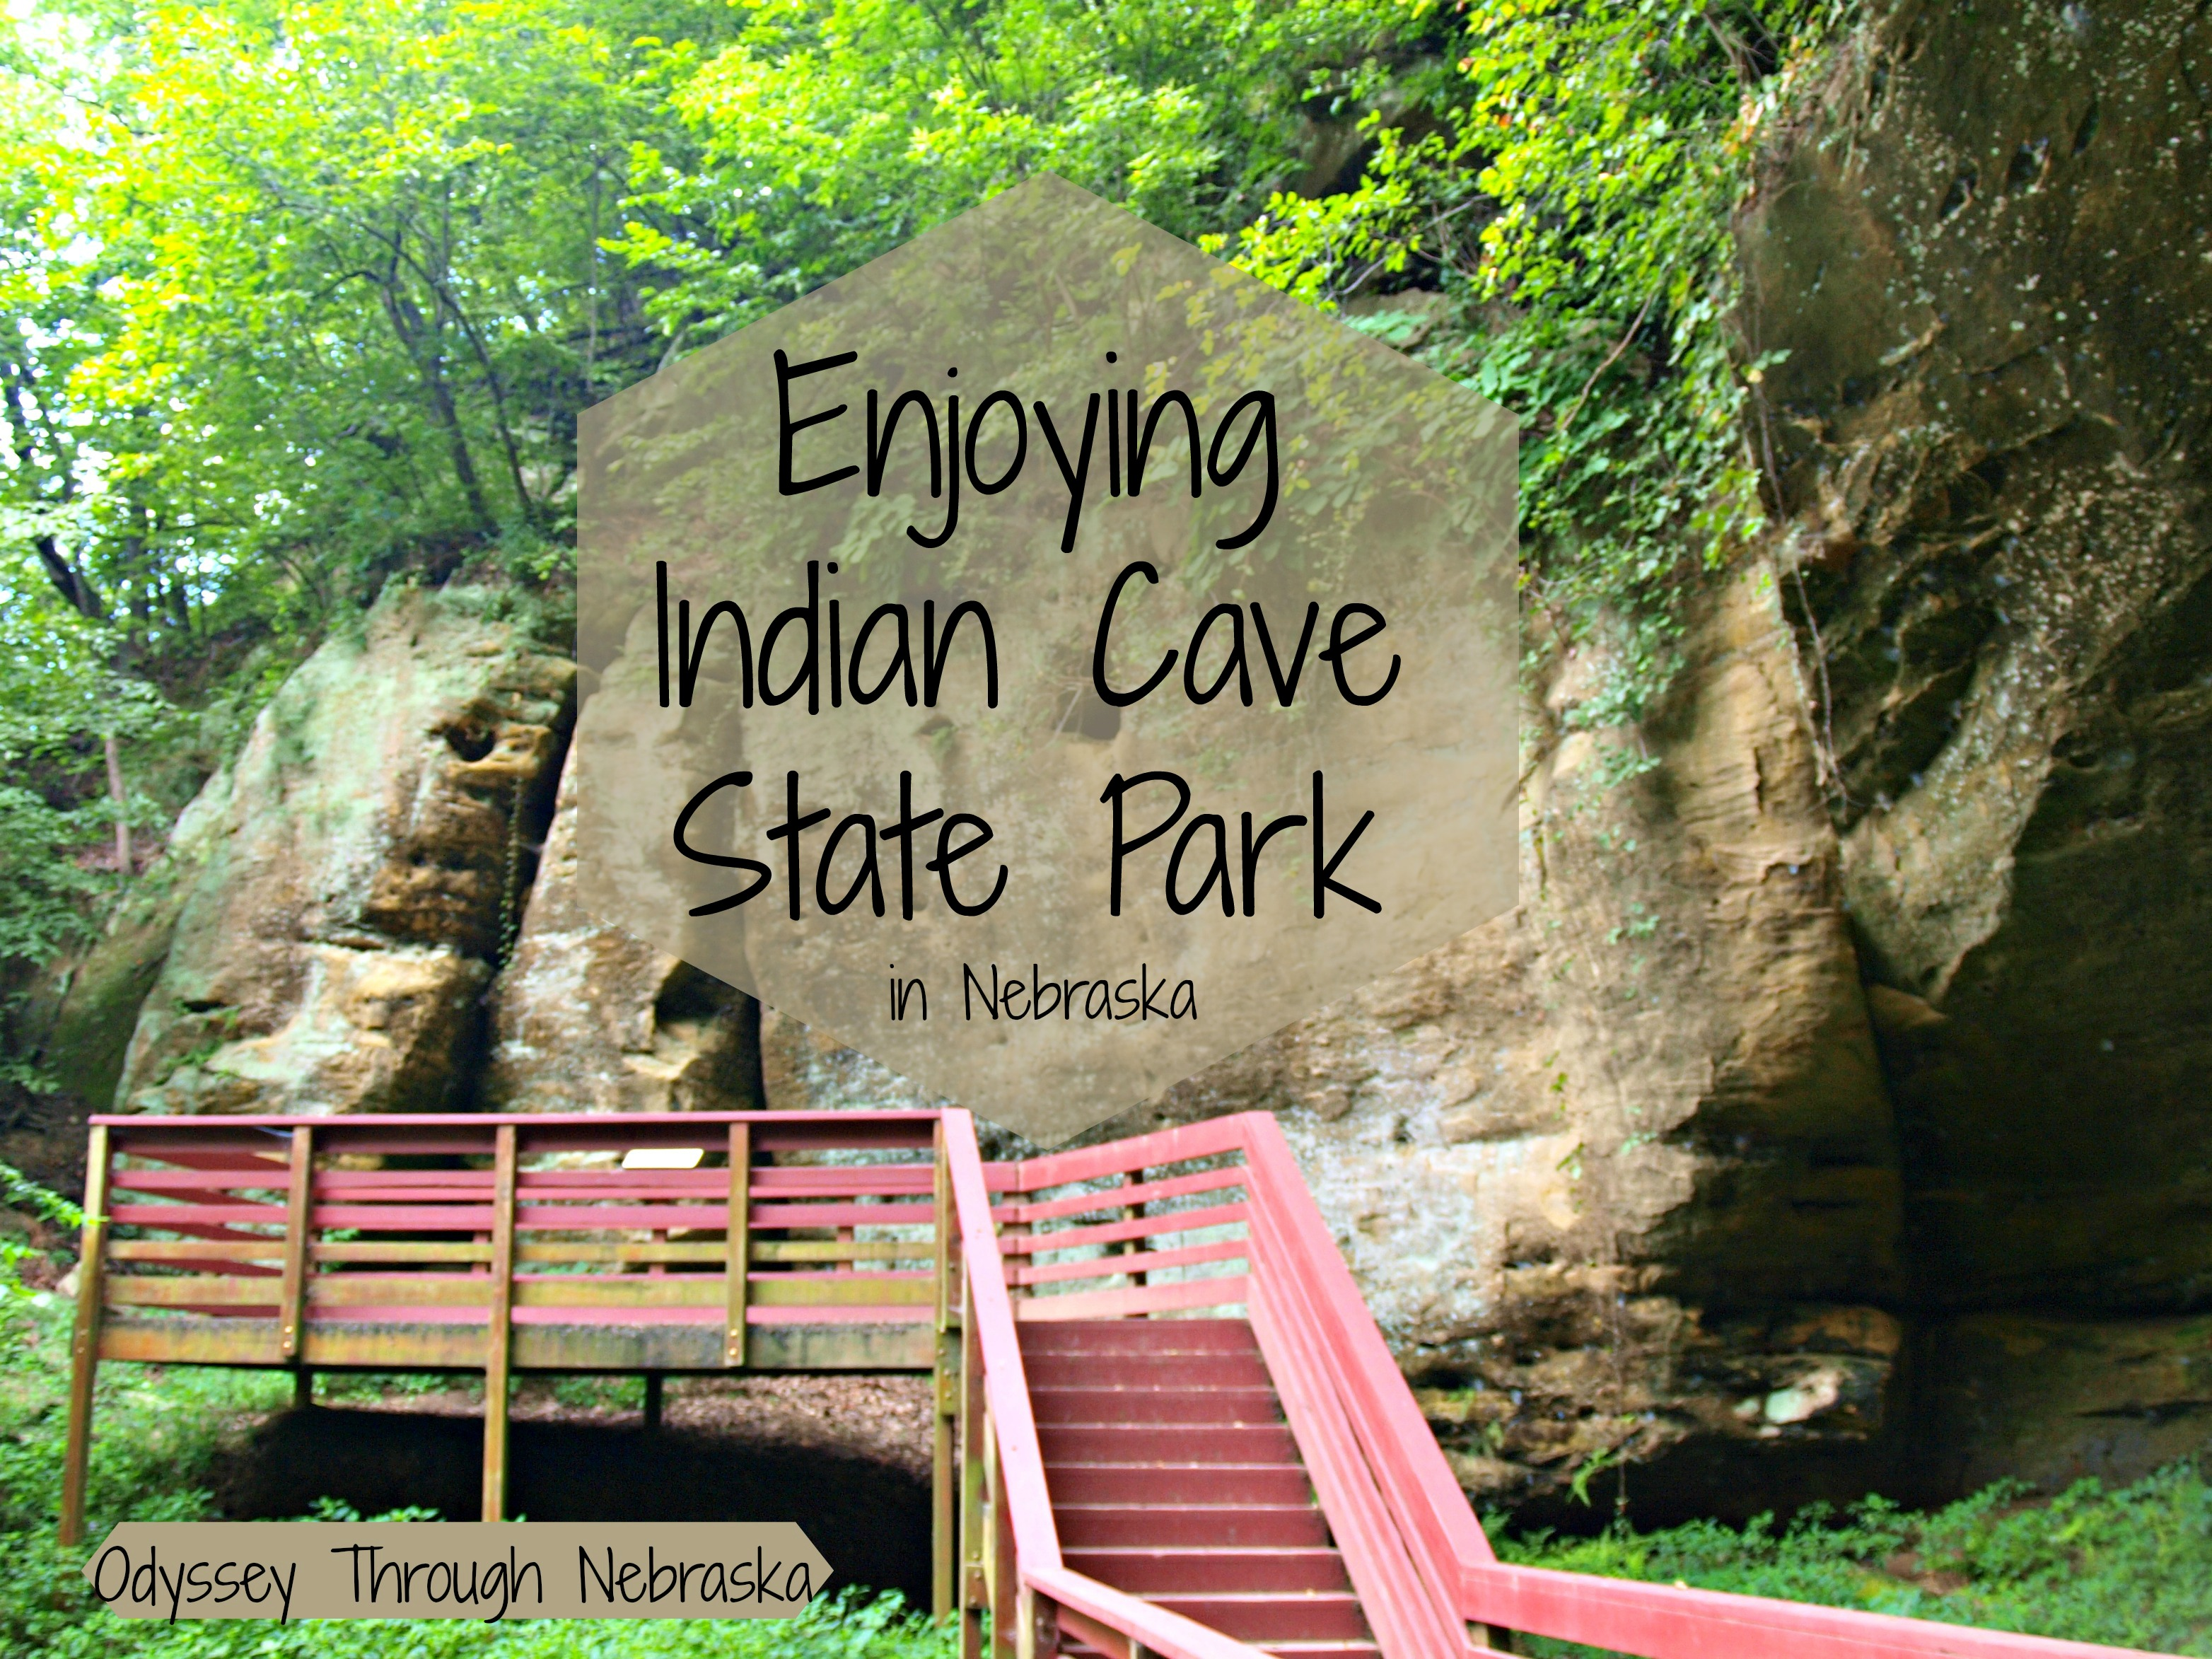 Indian Cave State Park in Nebraska